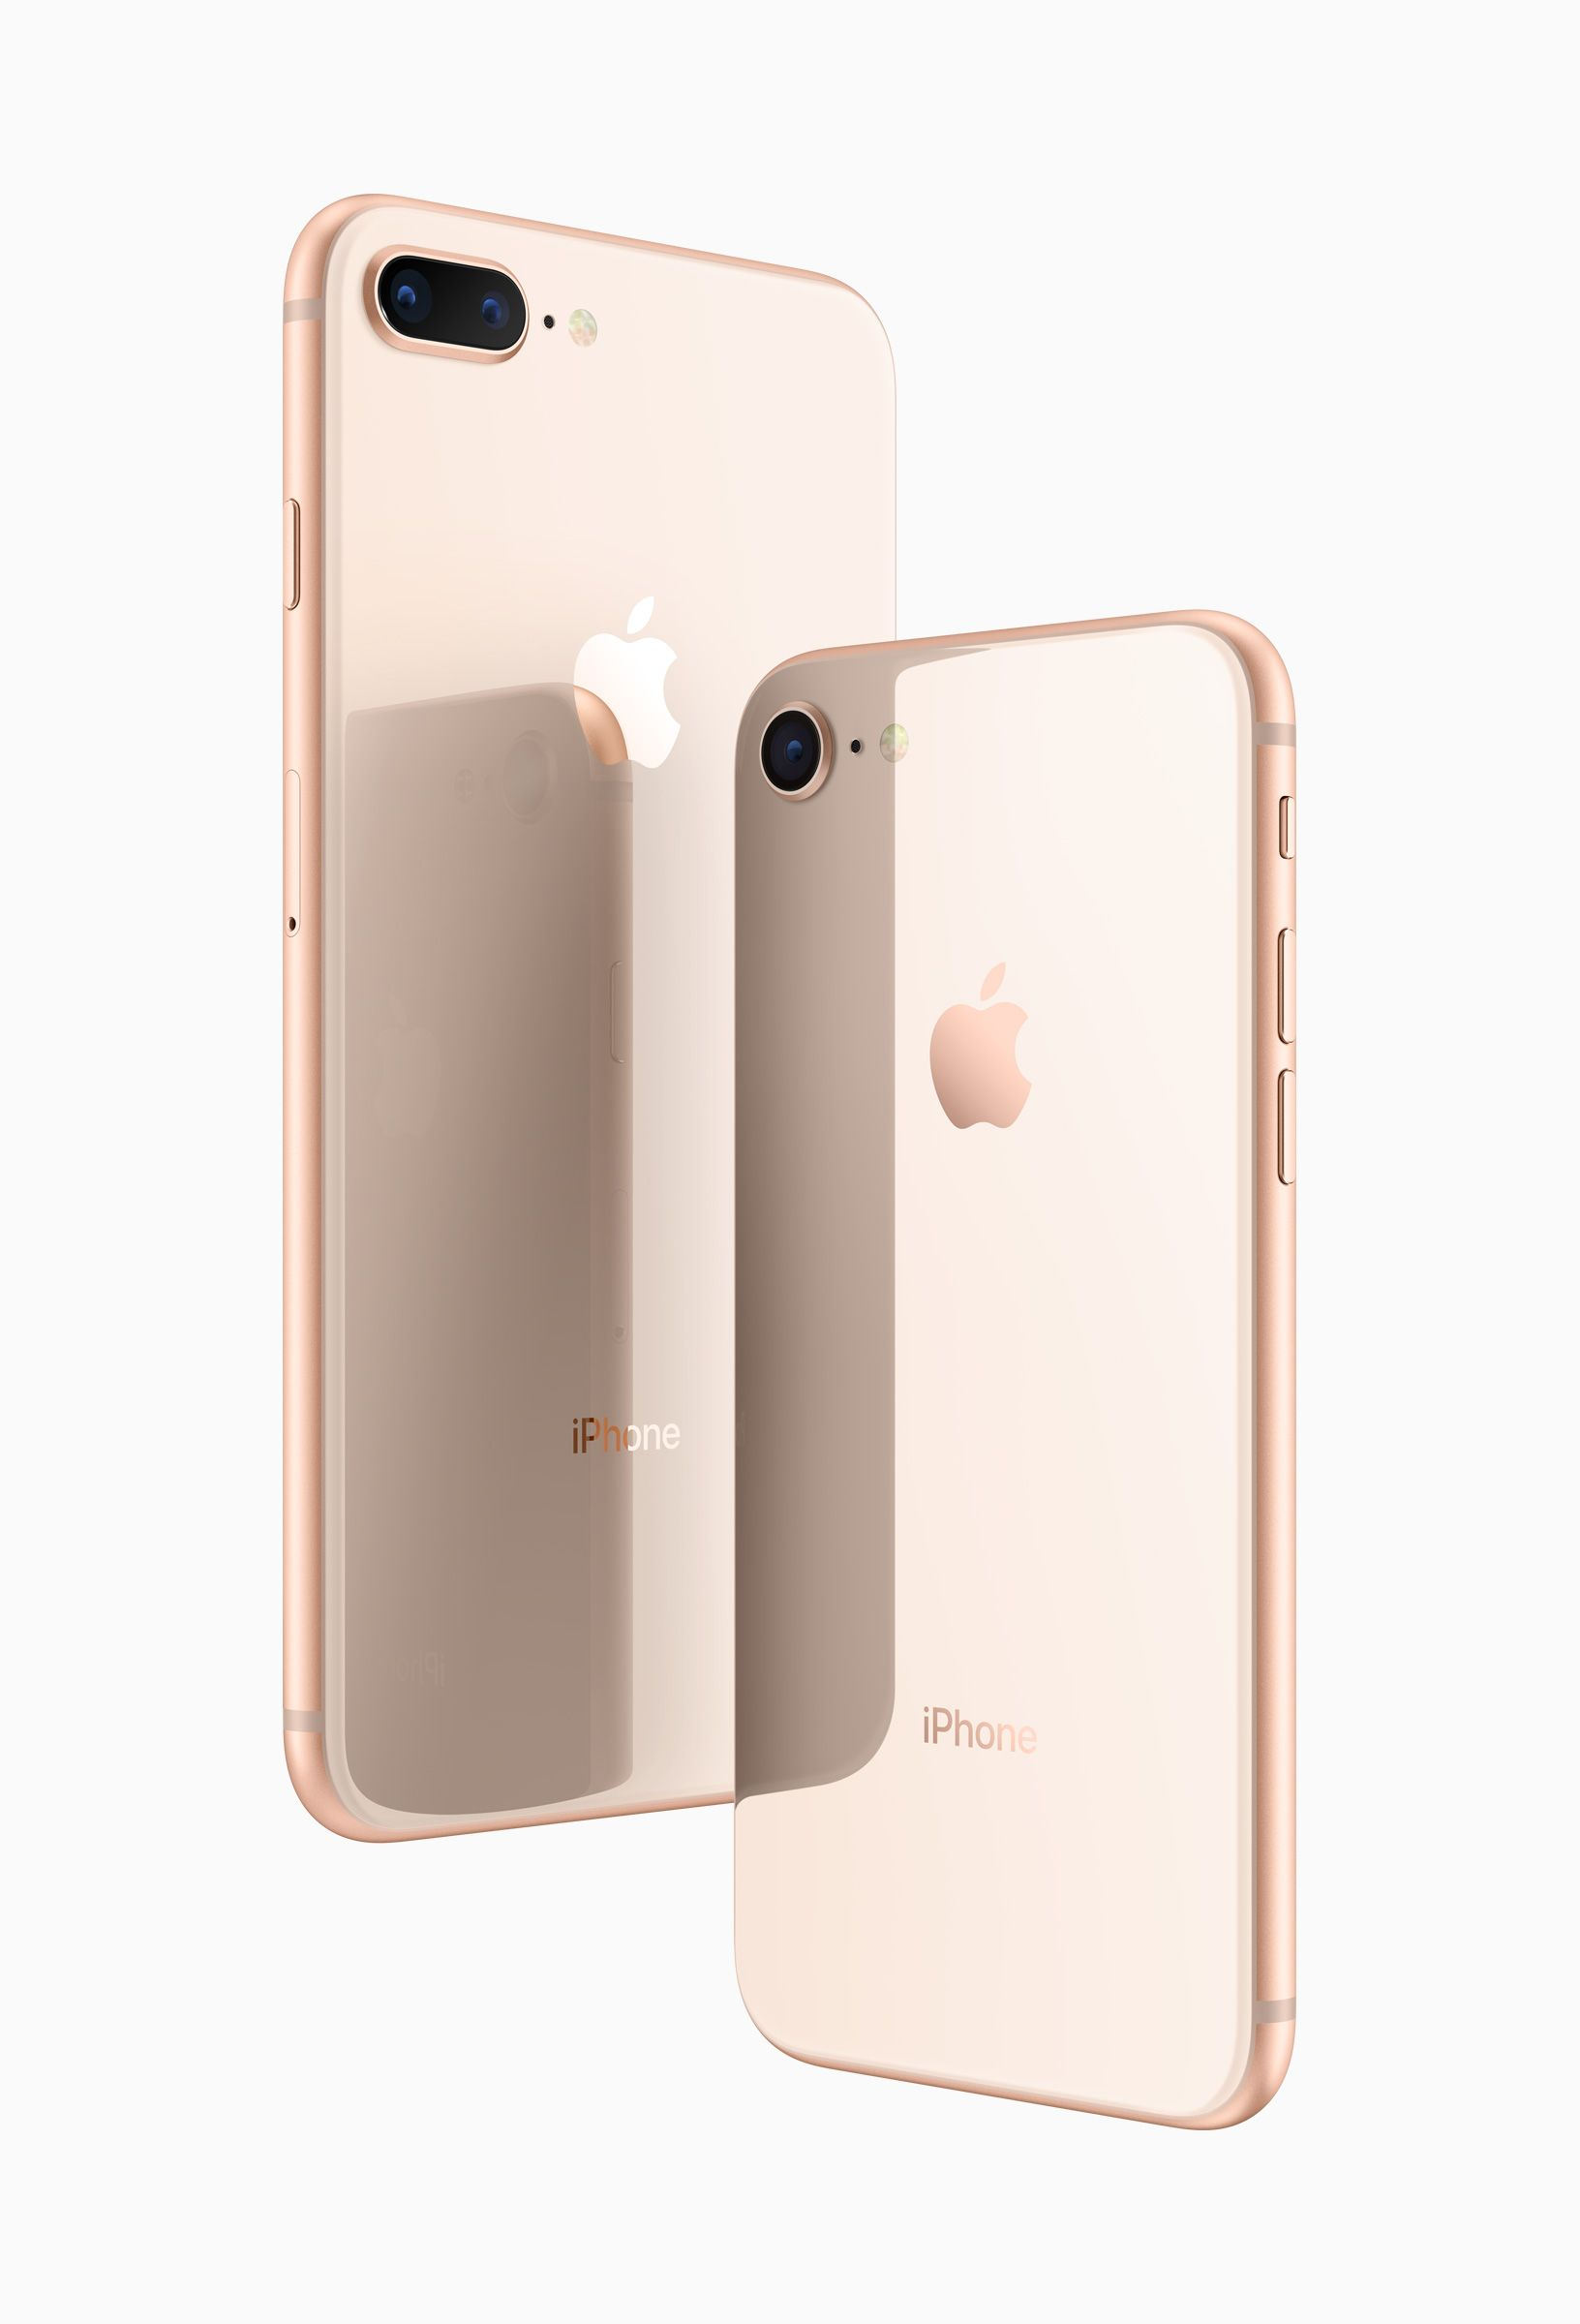 Iphone 8 Plus Gold Color Images